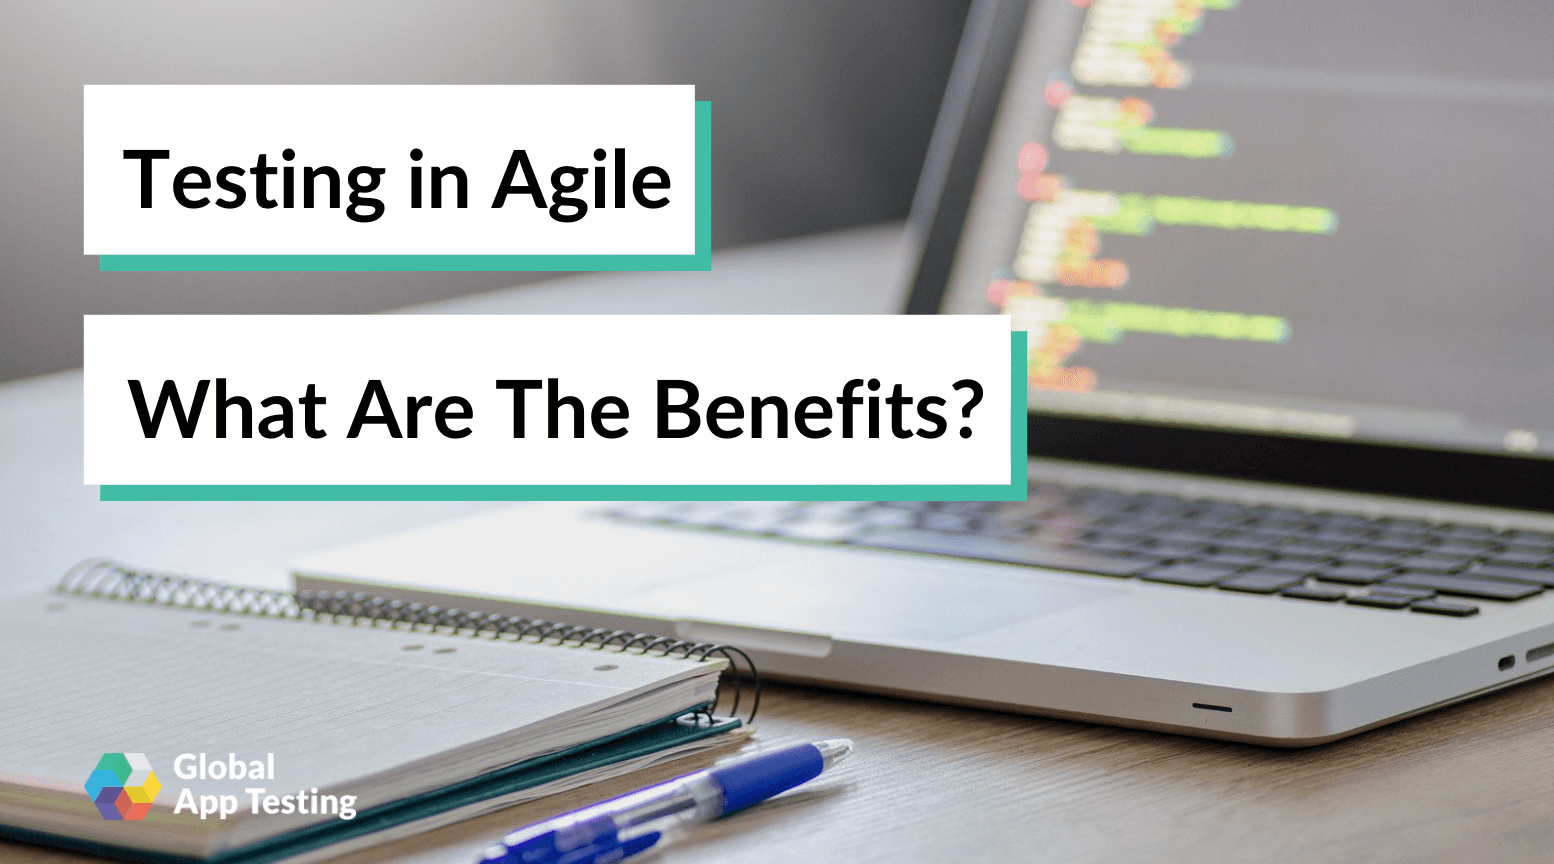 Testing in Agile: What Are The Benefits?